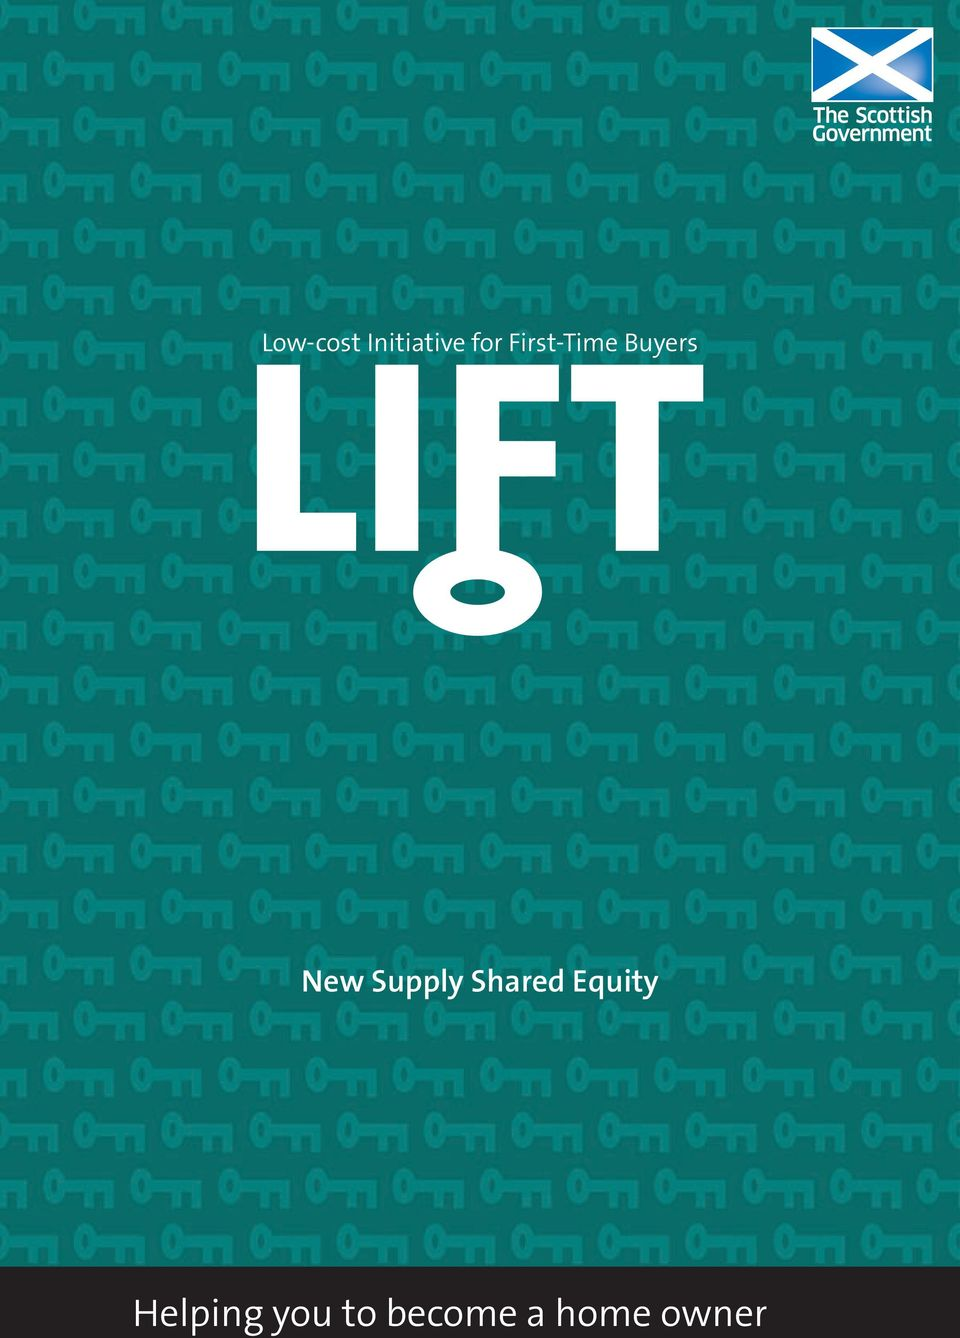 Supply Shared Equity